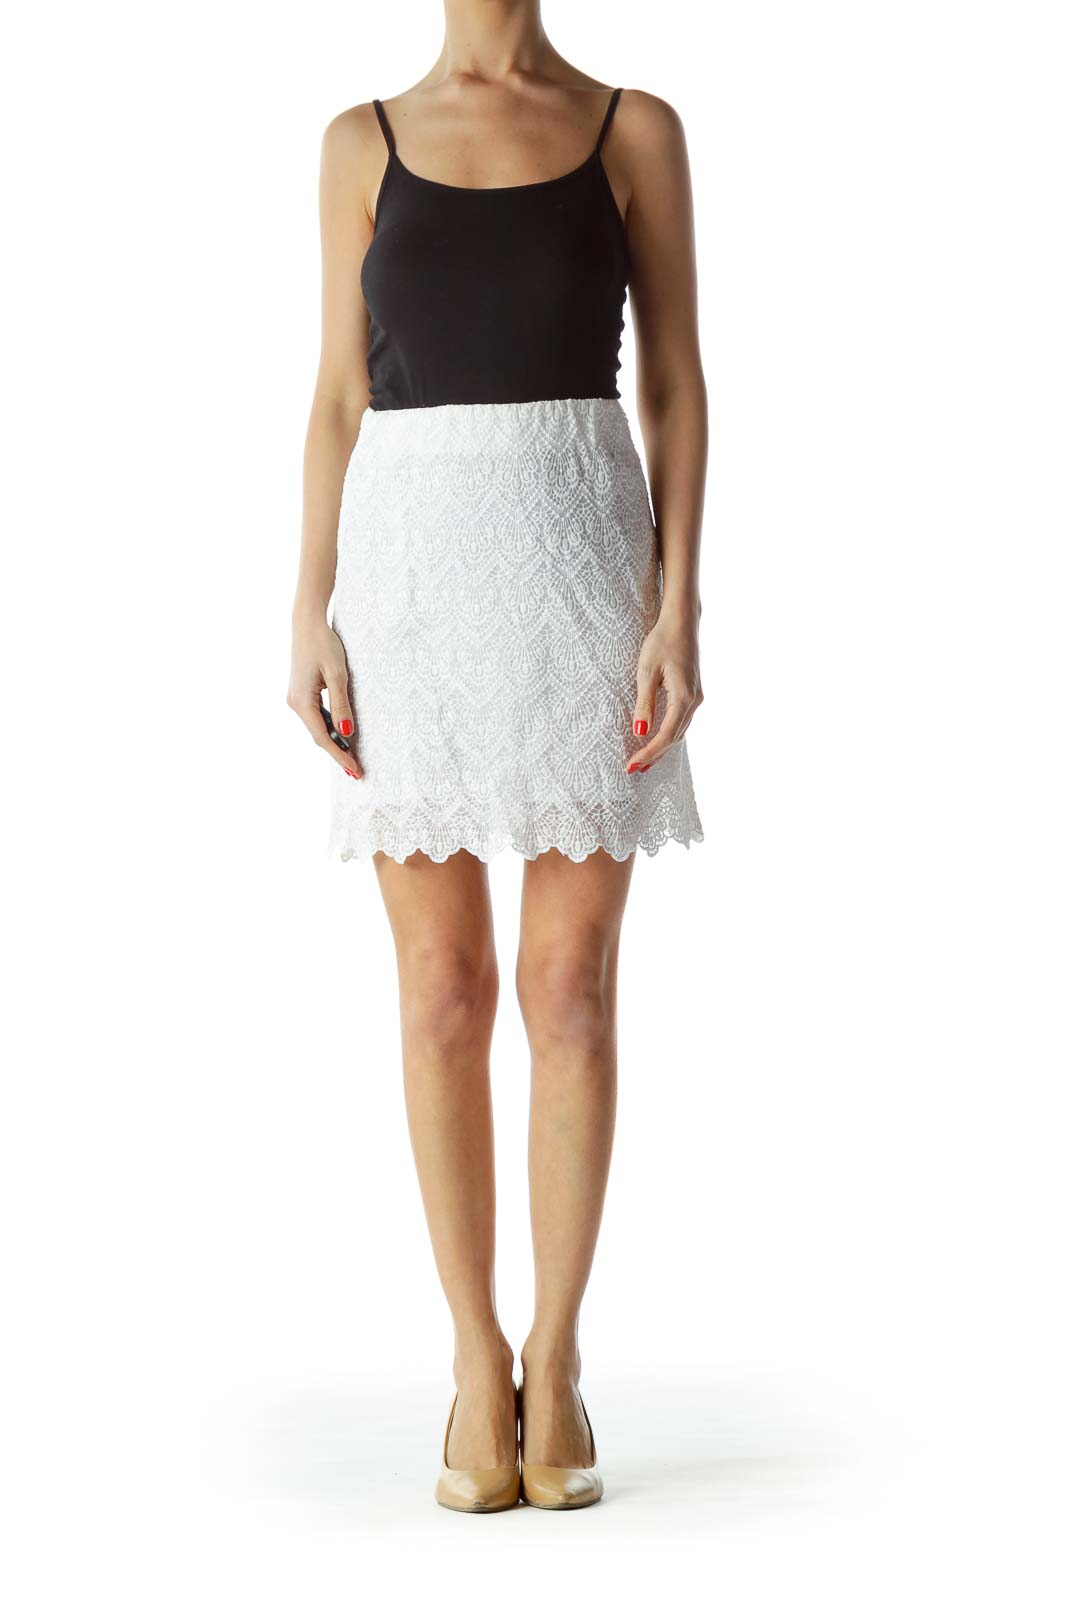 White Lace Textured Mini Skirt